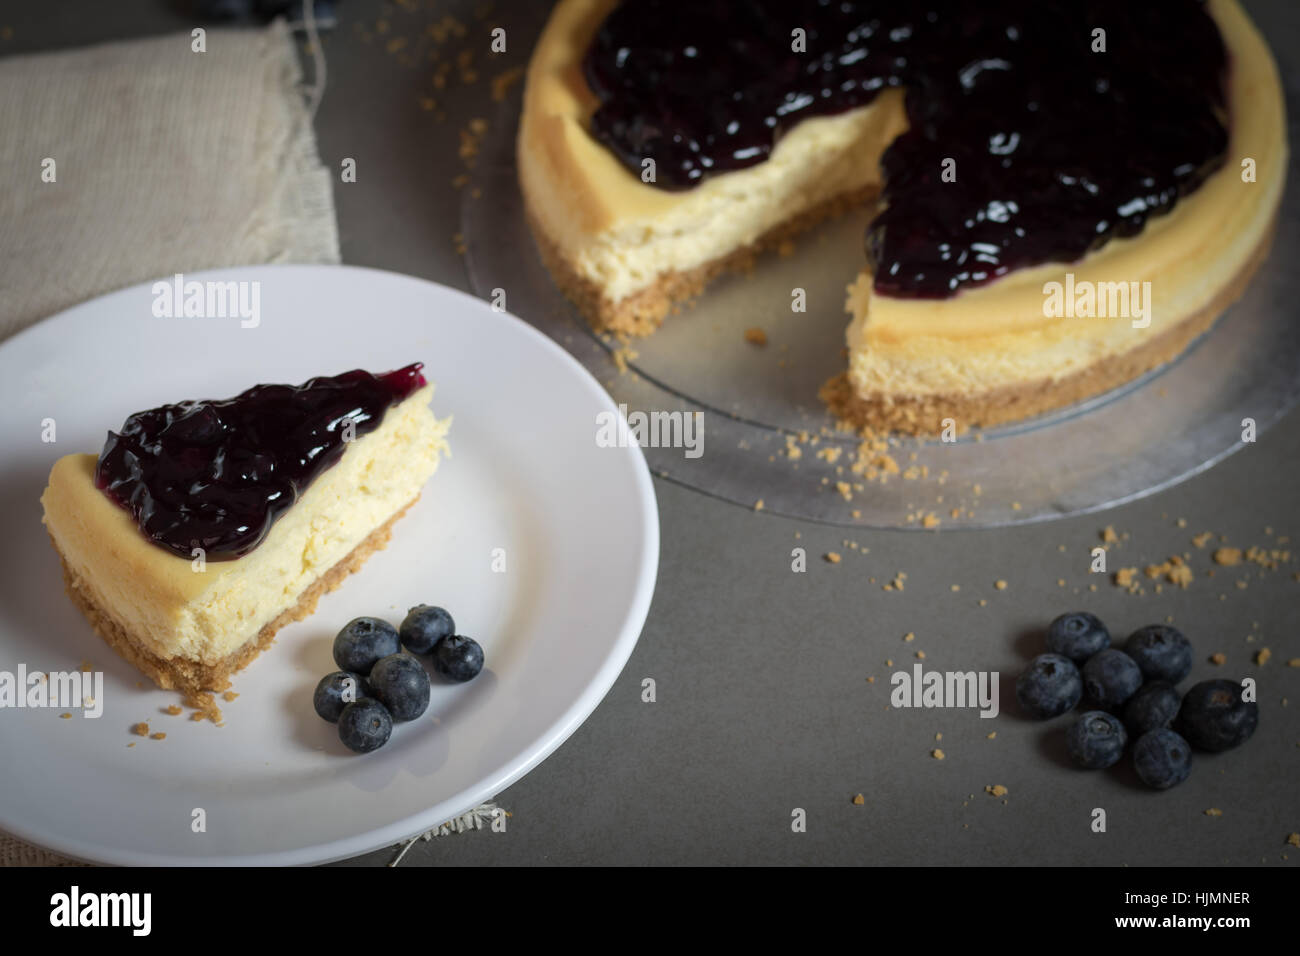 piece of freshness delicious blueberry cheese cake on plate is sweet baked bakery dessert,selective focus. - Stock Image